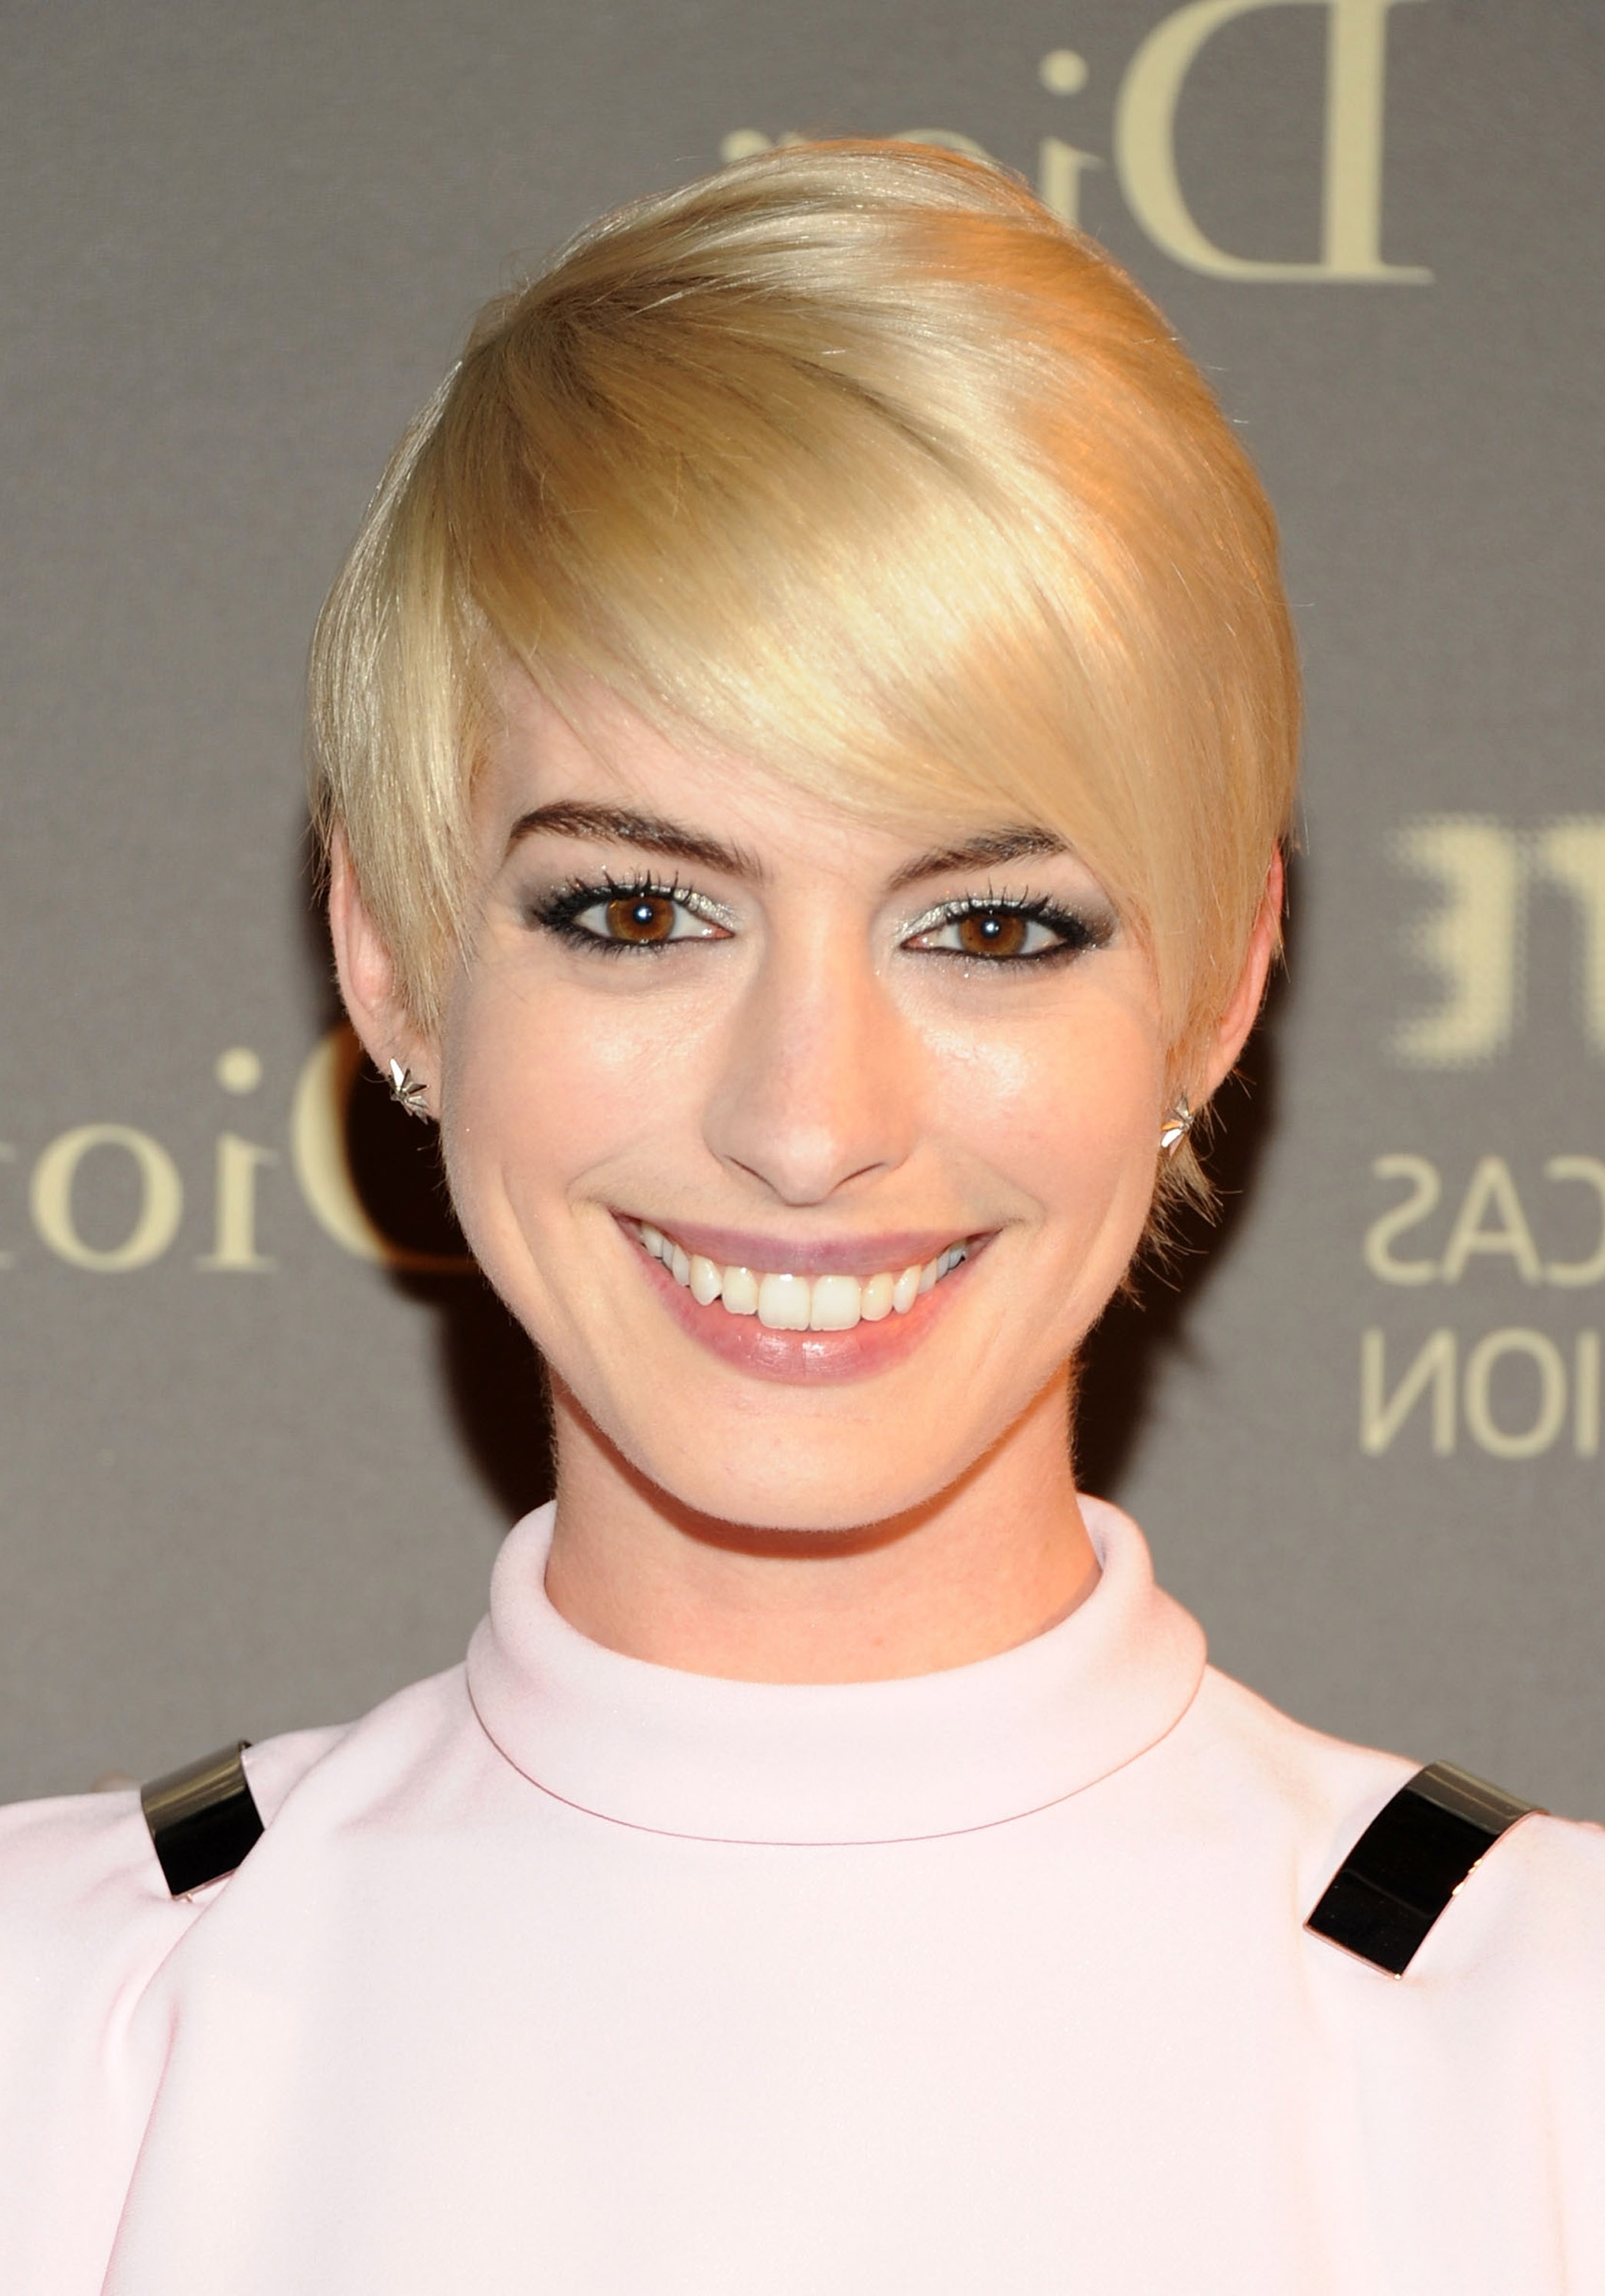 40 Best Short Pixie Cut Hairstyles 2018 – Cute Pixie Haircuts For Inside Best And Newest Ladies Pixie Hairstyles (View 12 of 15)